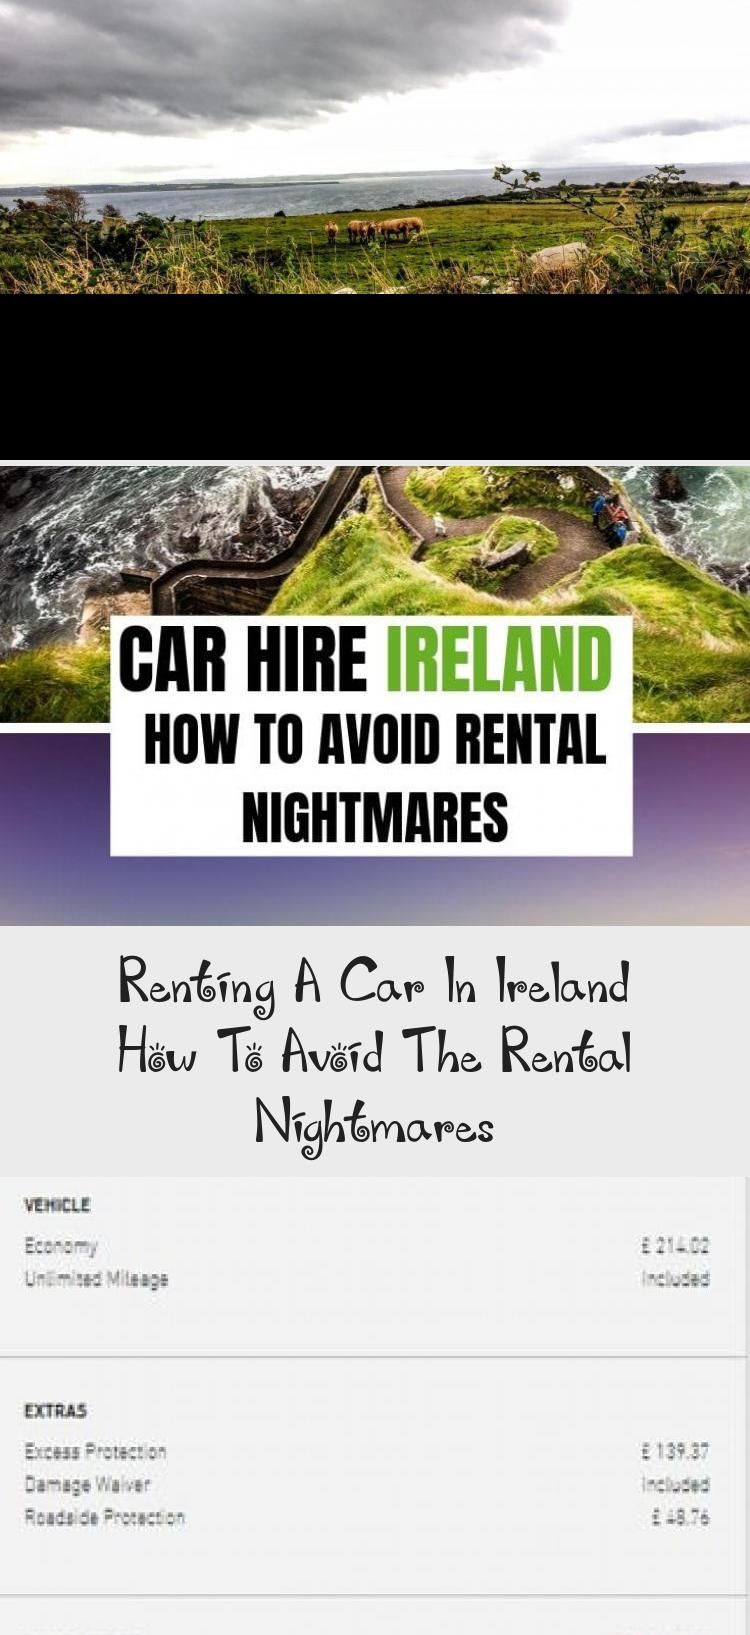 Car hire and car rental in ireland can be a really